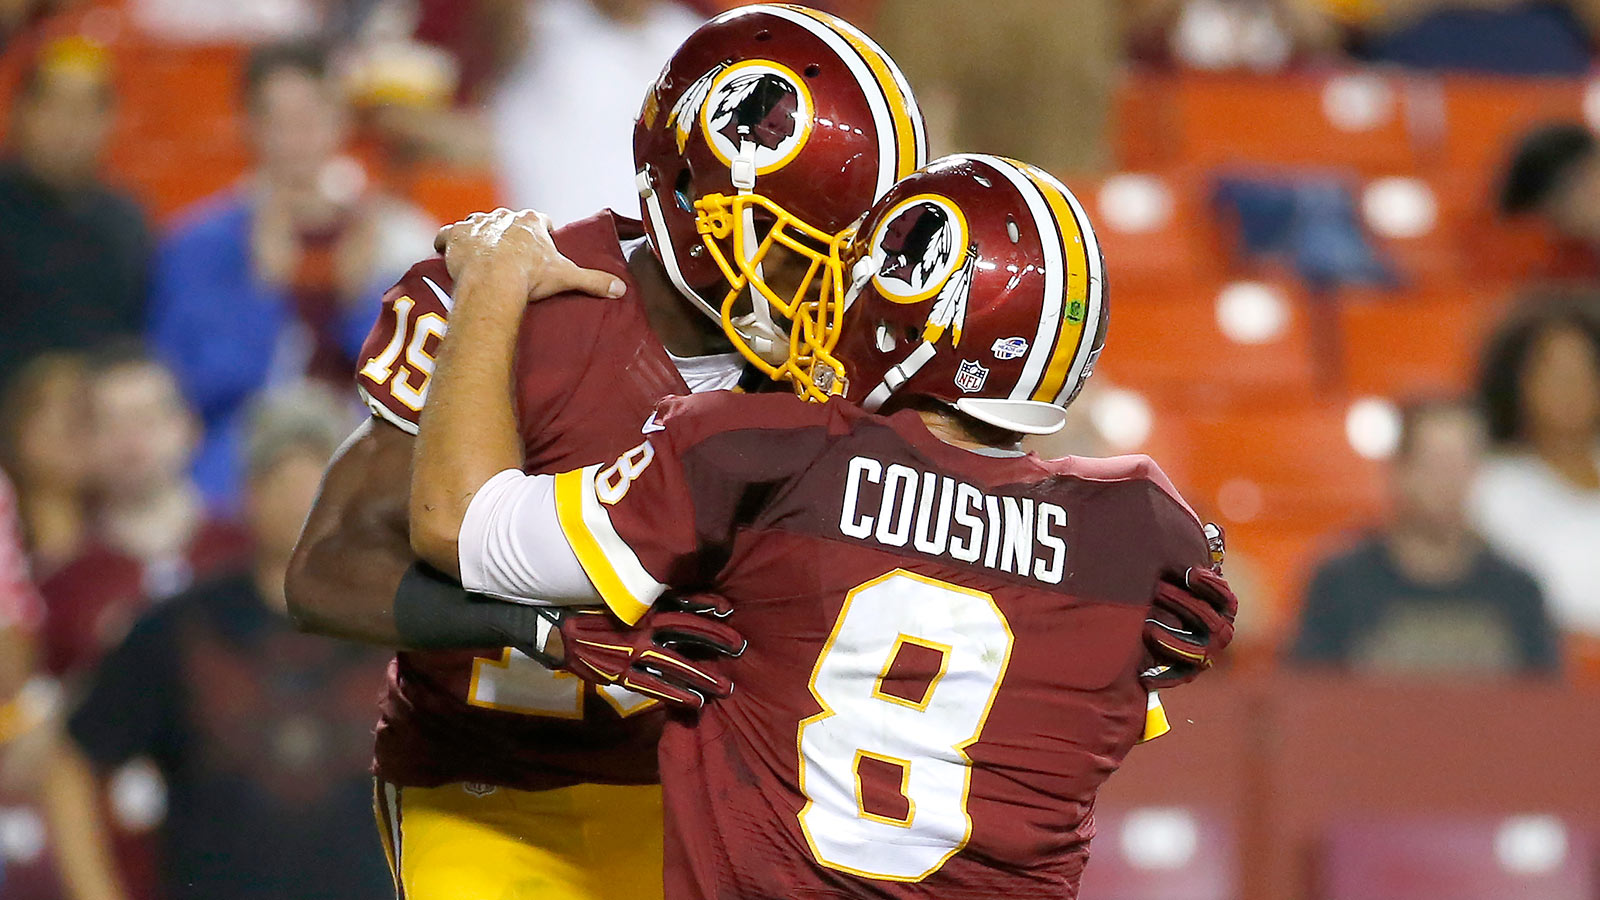 With RG3 injured, Redskins' backup QBs pull out win over Lions